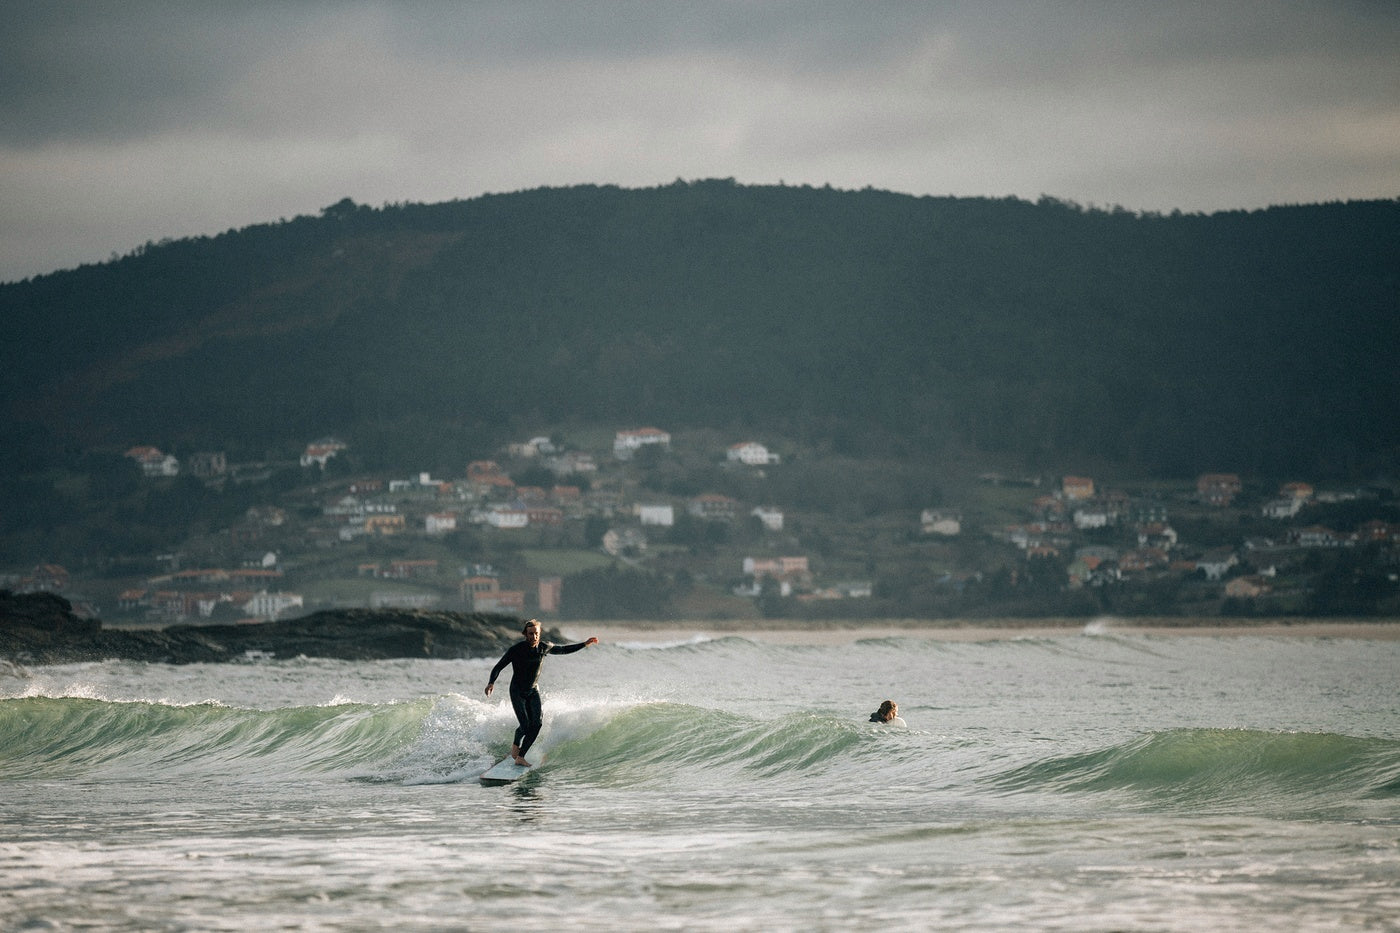 Mike Lay makes the most of small crumbly surf on his longboard